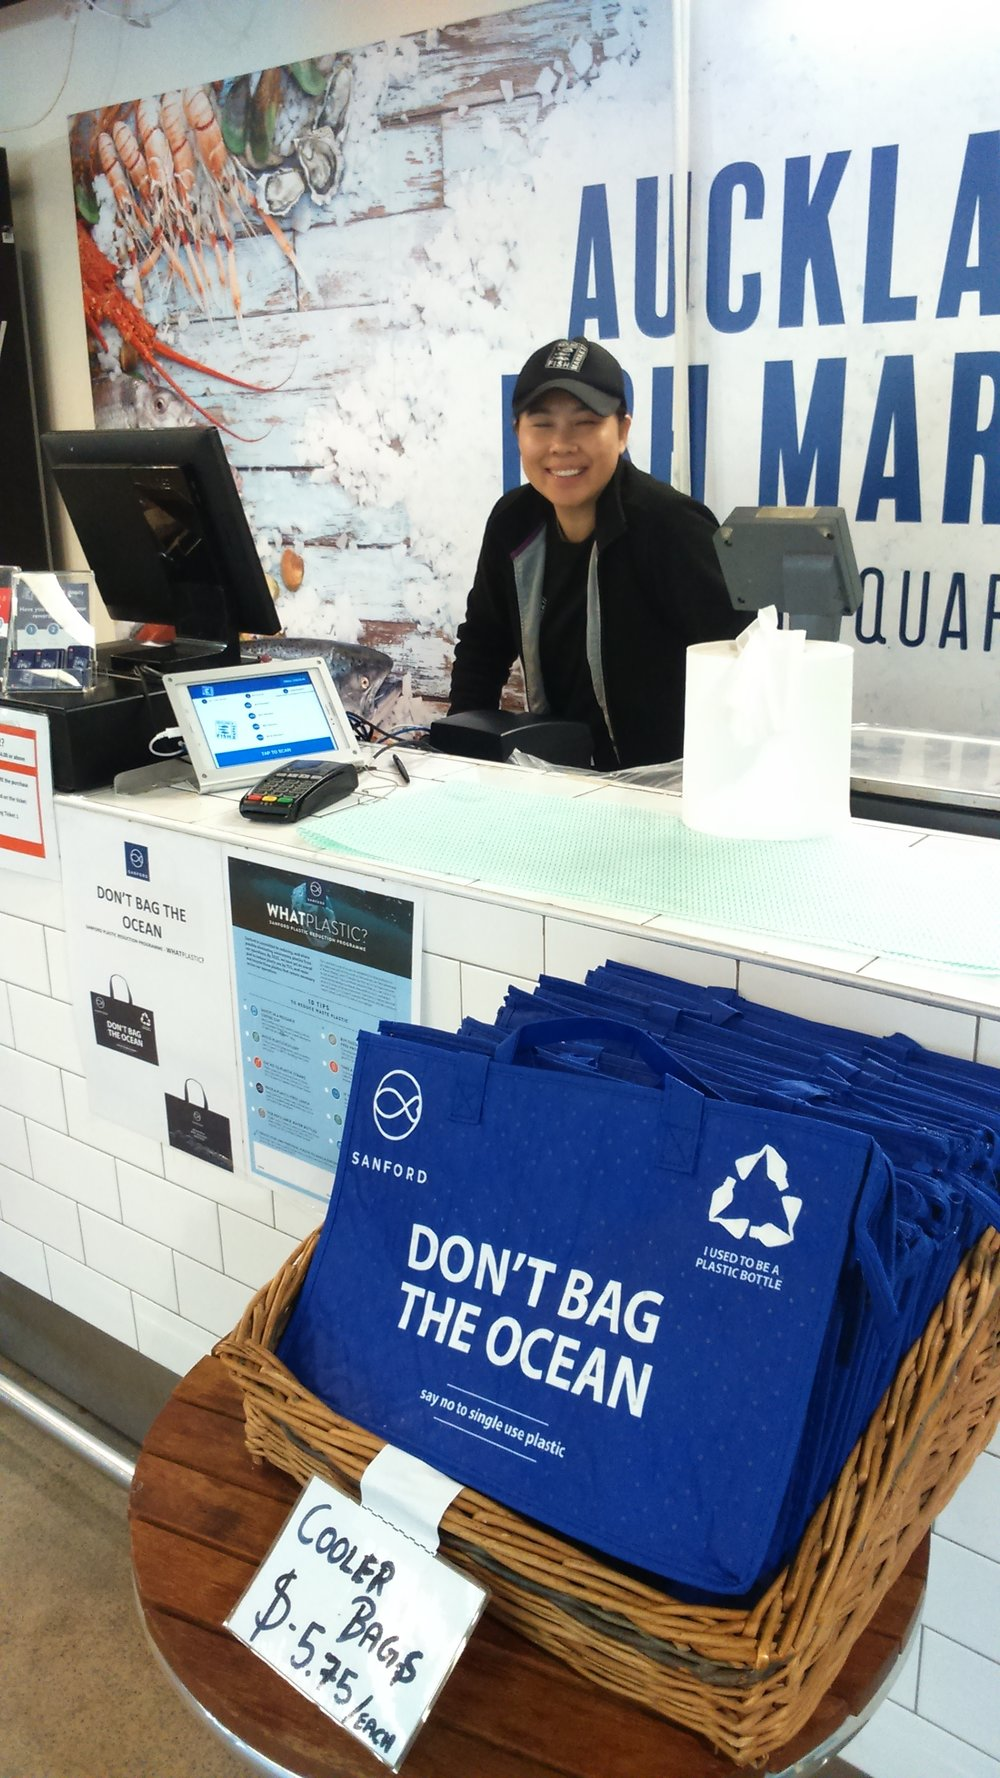 Cooler bags from recycled plastic bottles, on sale at Sanford's Auckland market. Photo: Stephen Harris